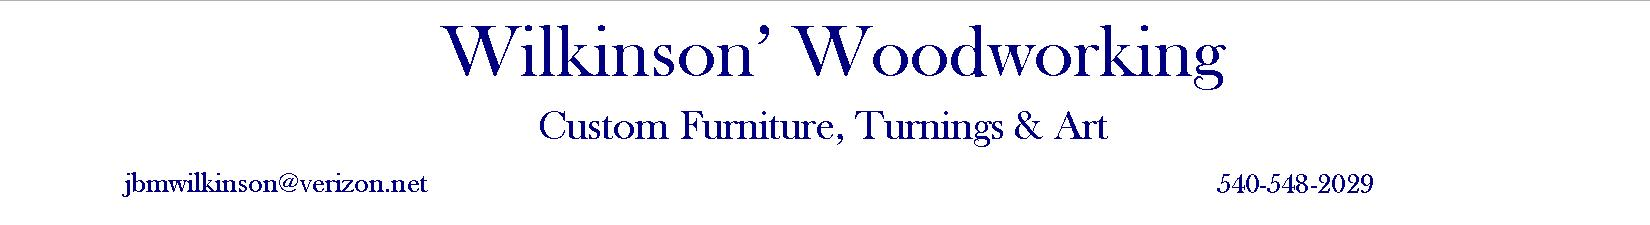 Wilkinson's Woodworking